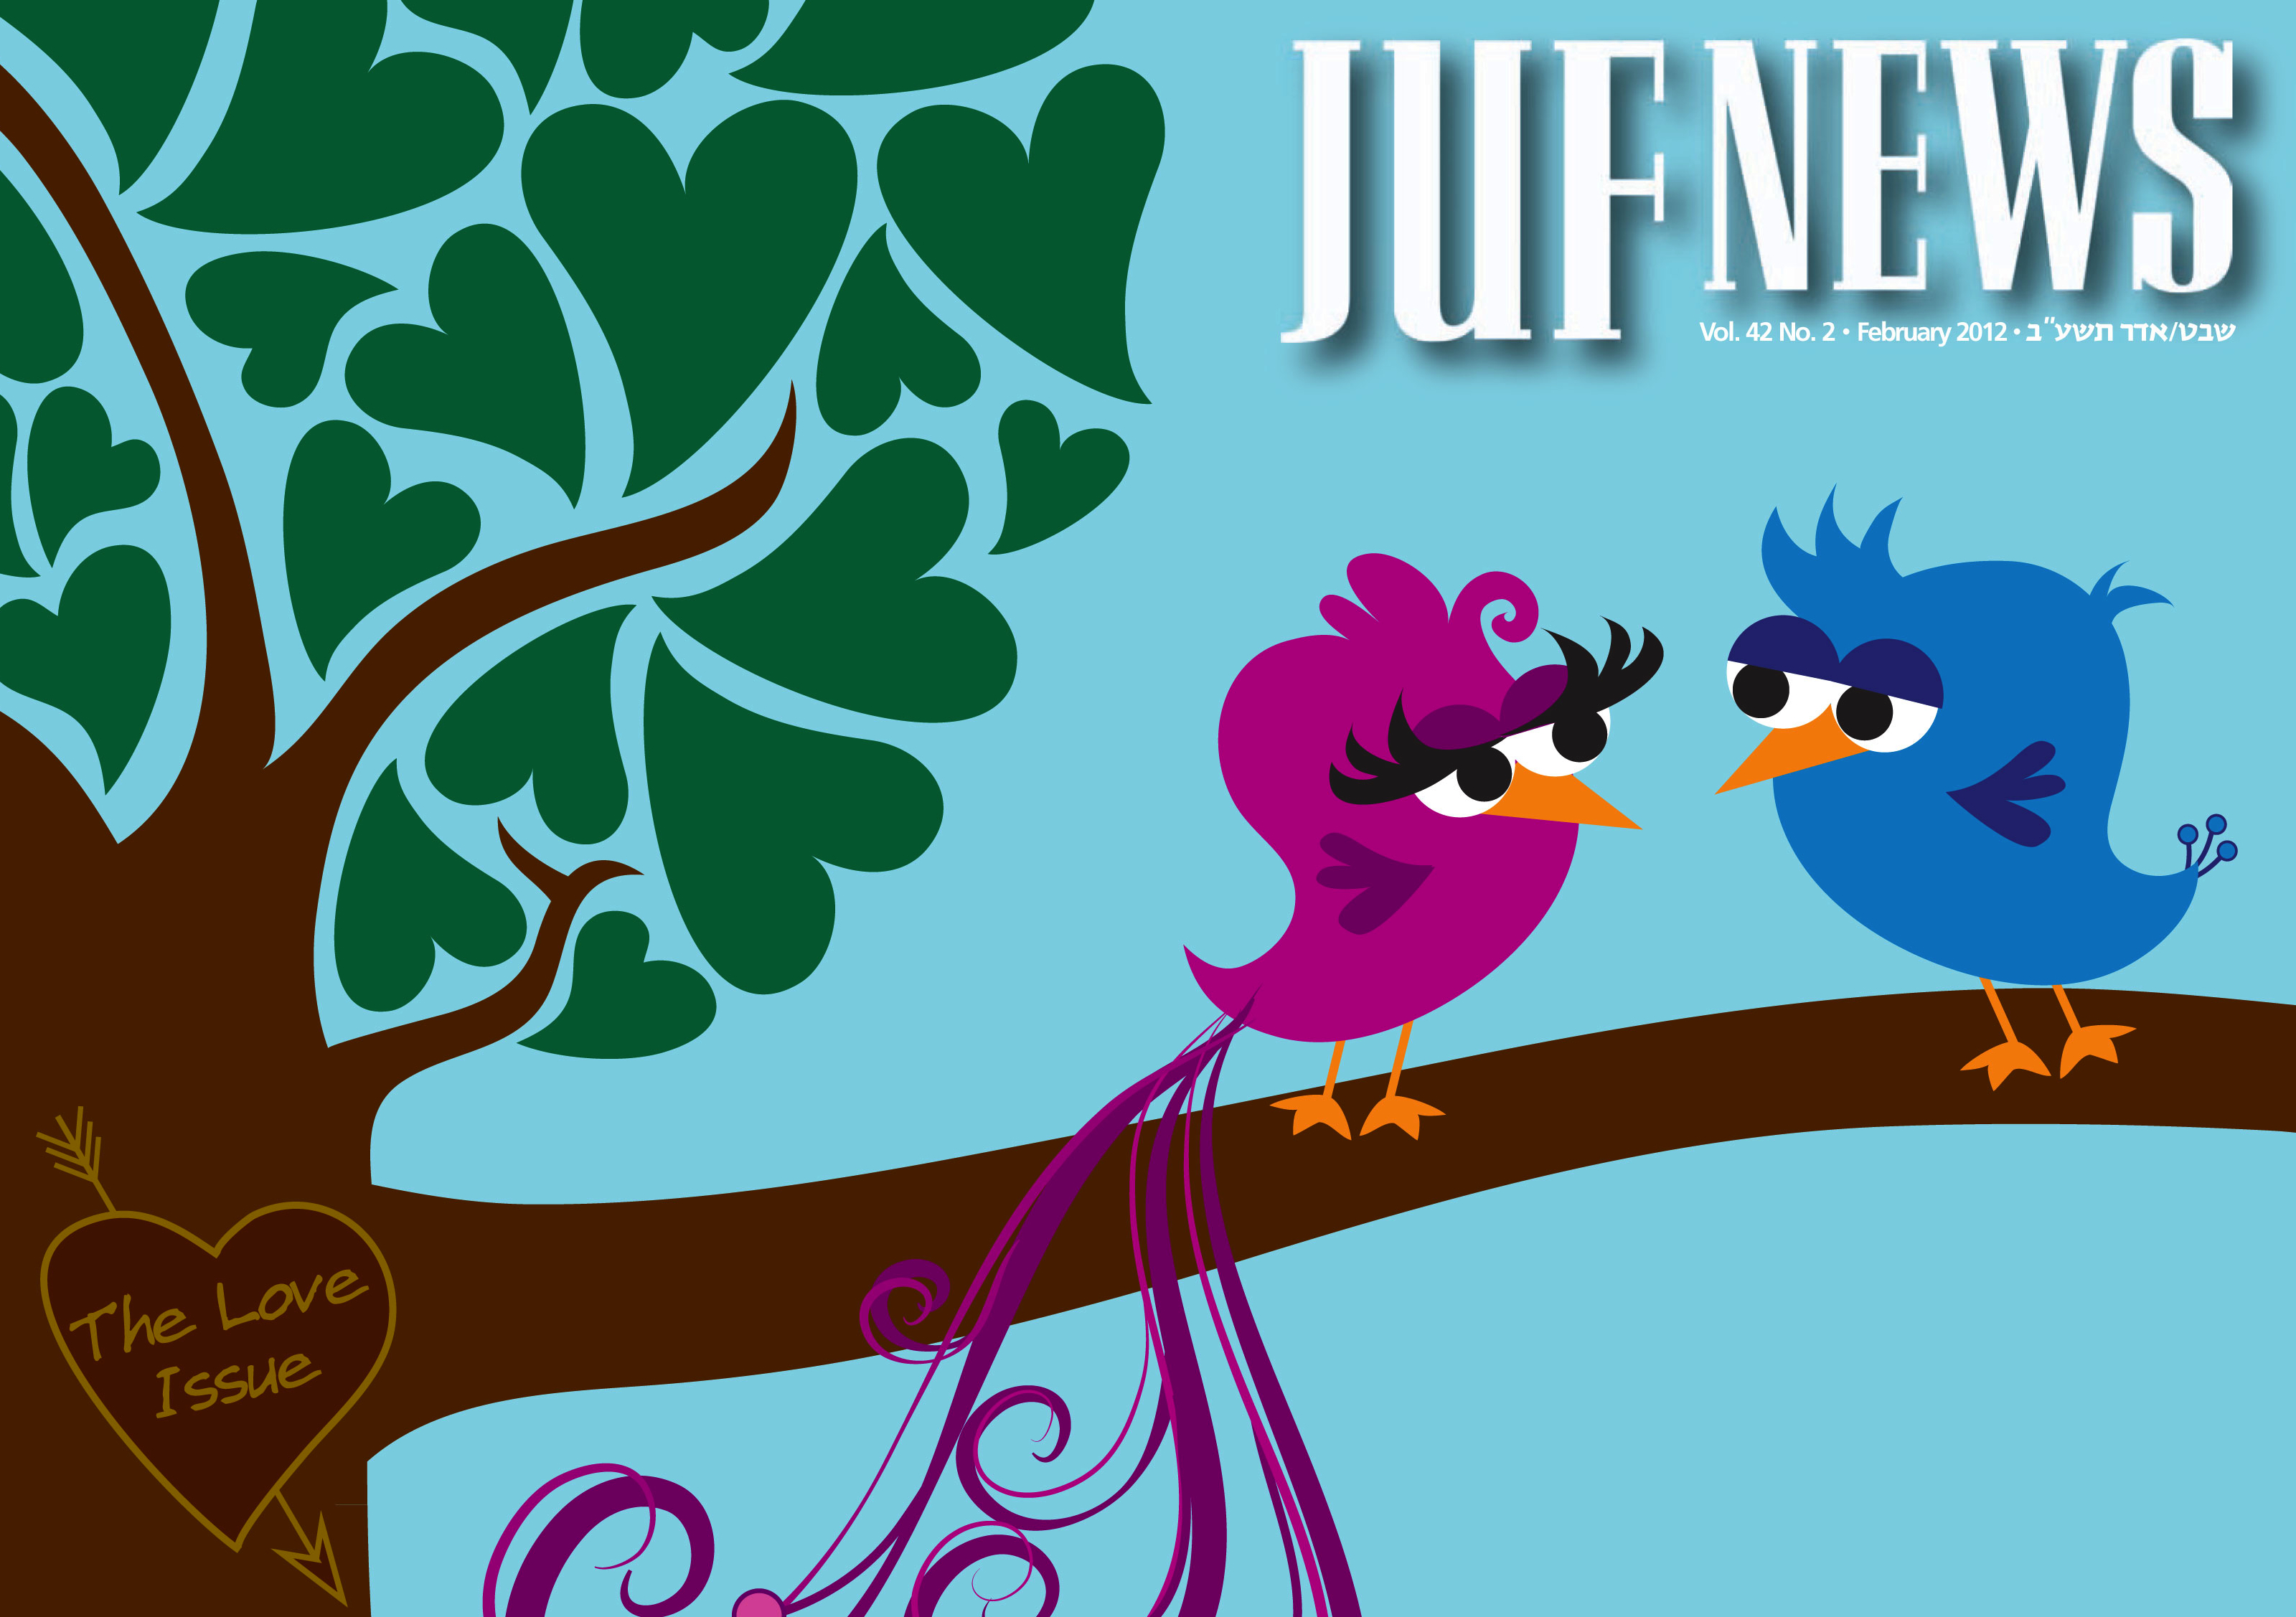 JUF News Covers